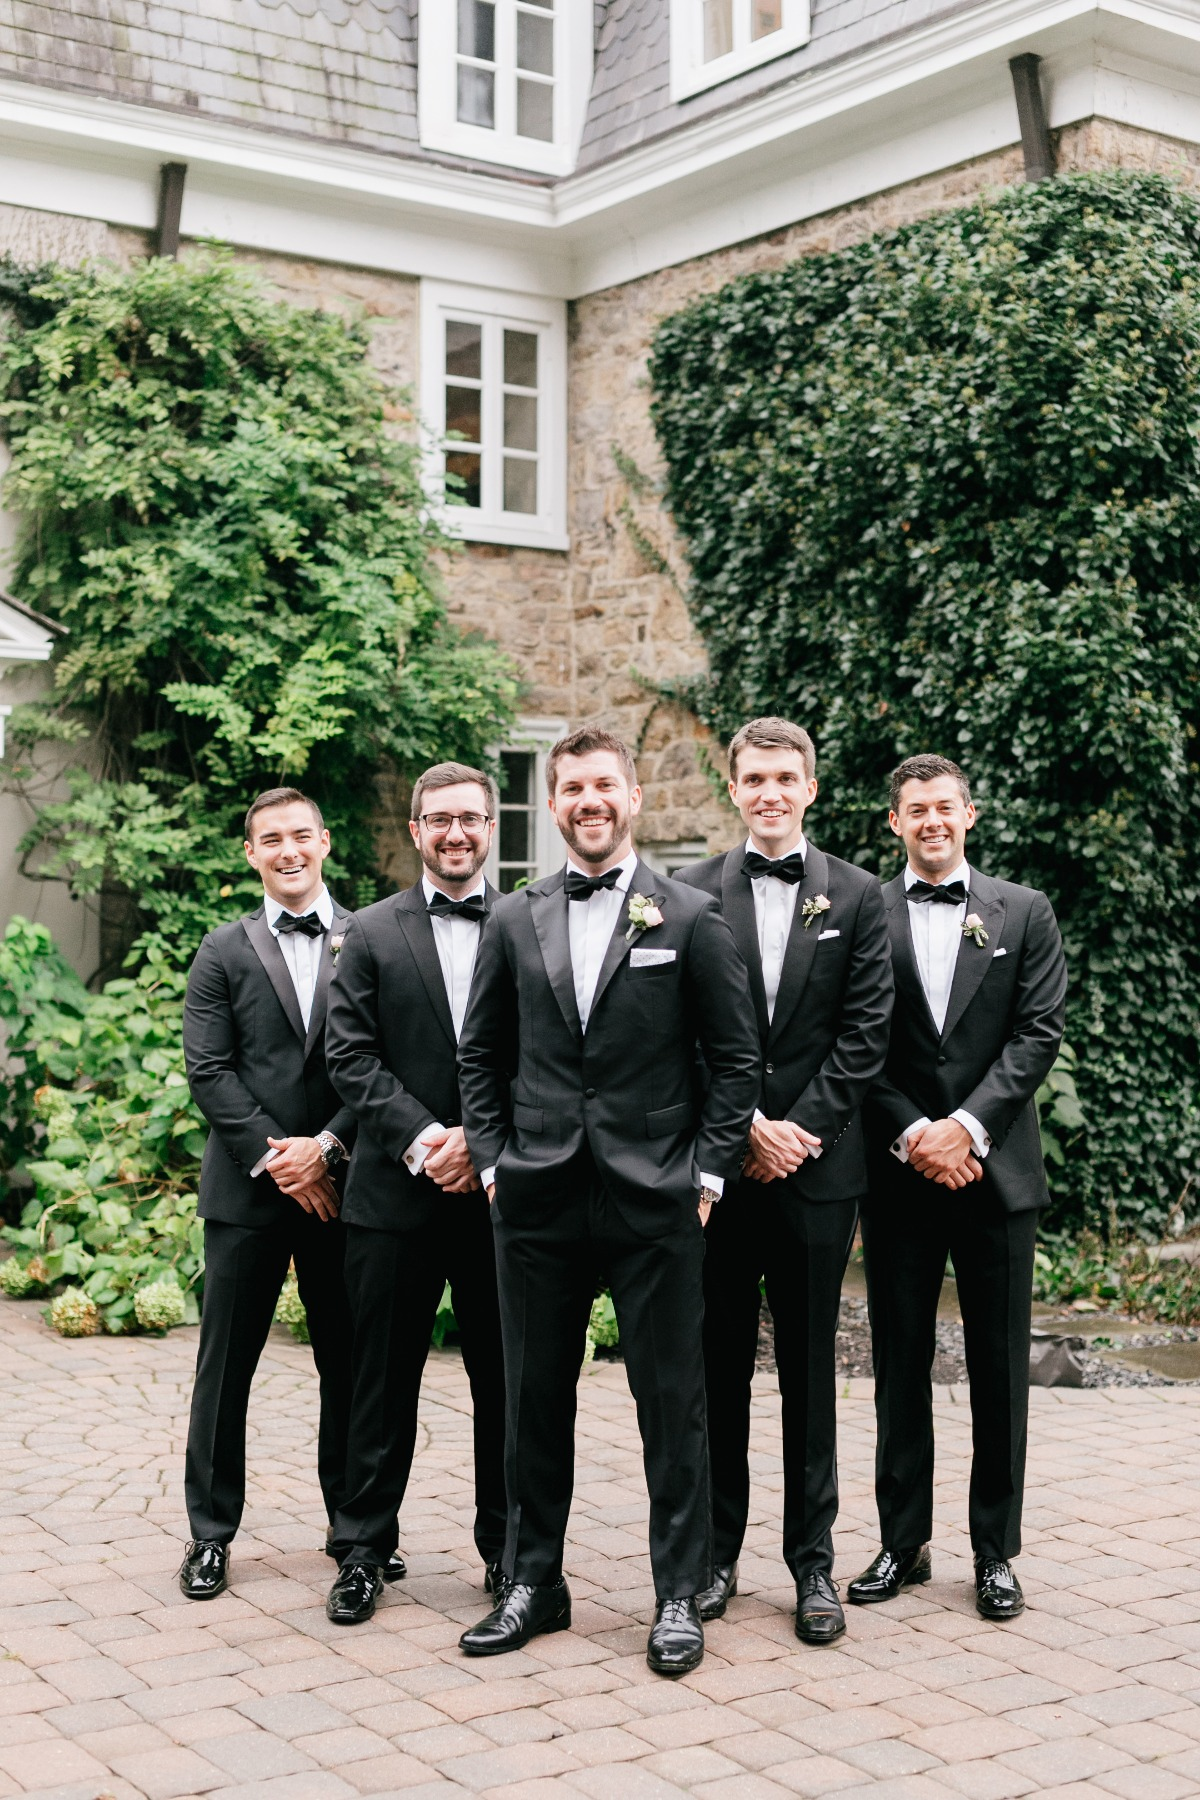 Classic black tie look for the groomsmen